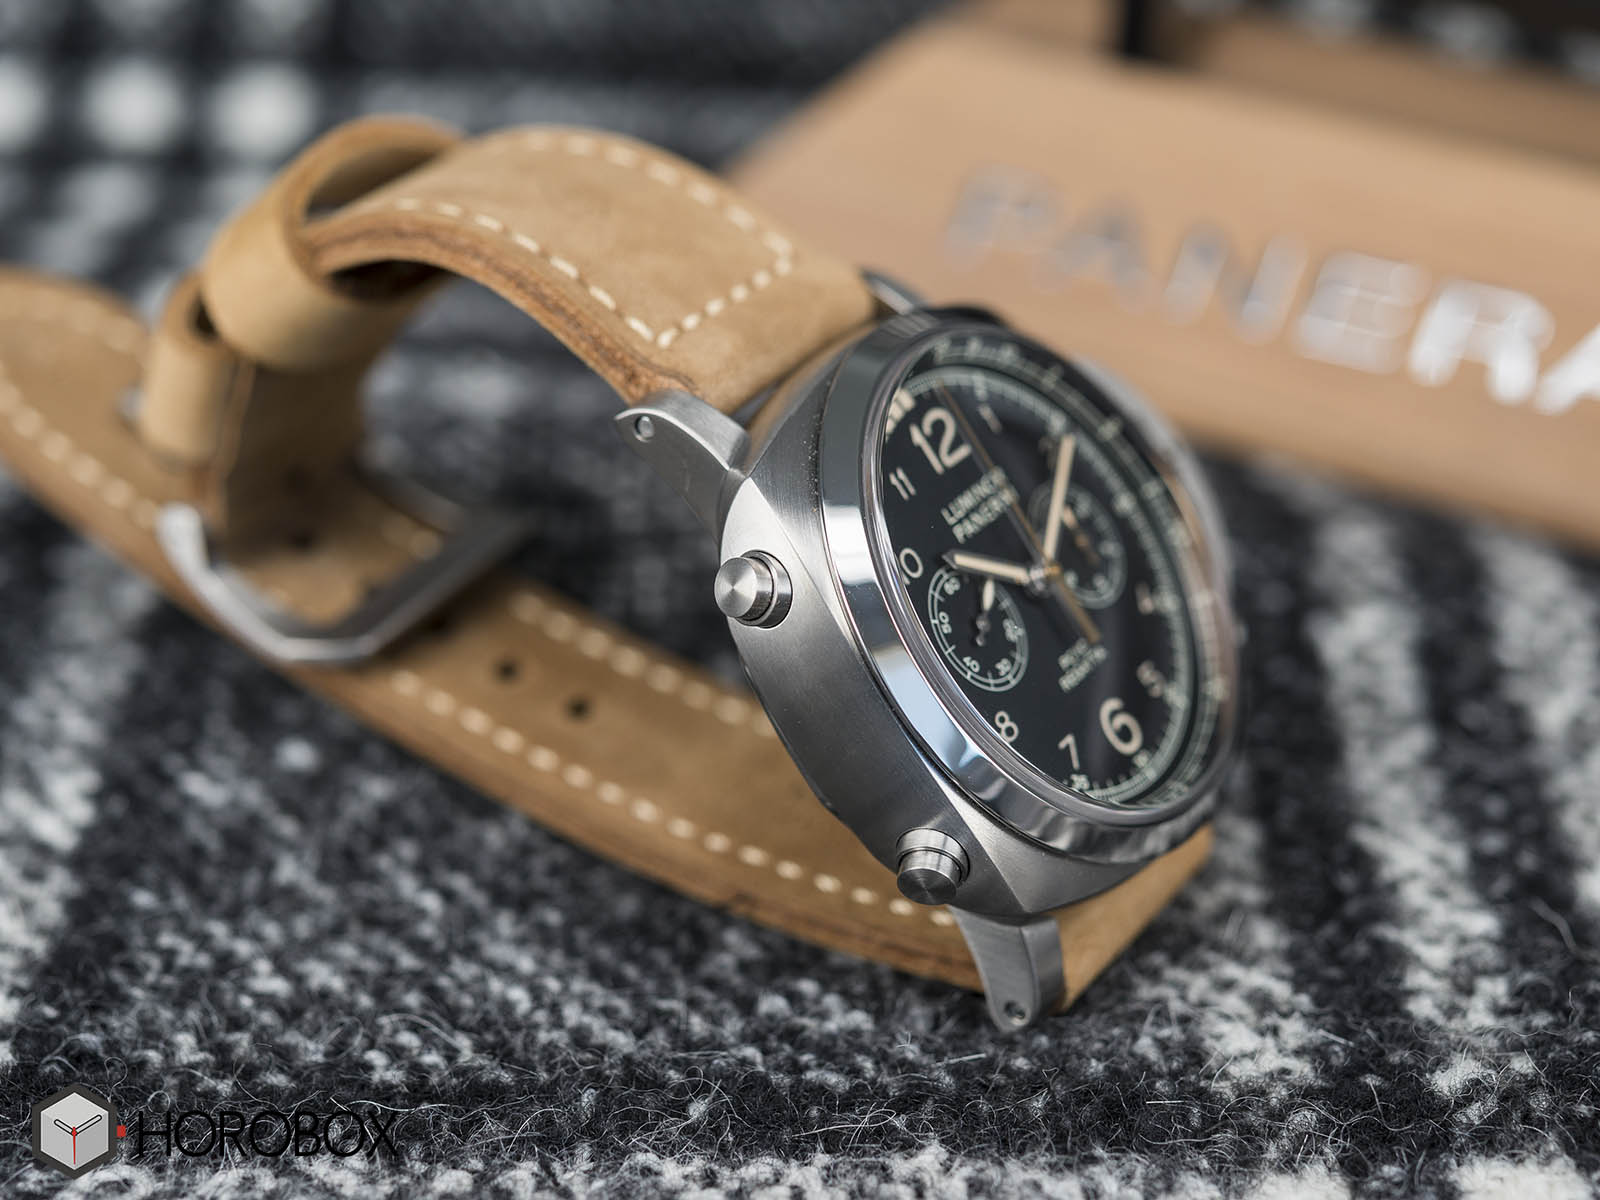 panerai-luminor-1950-pcyc-regatta-pam00652-3.jpg